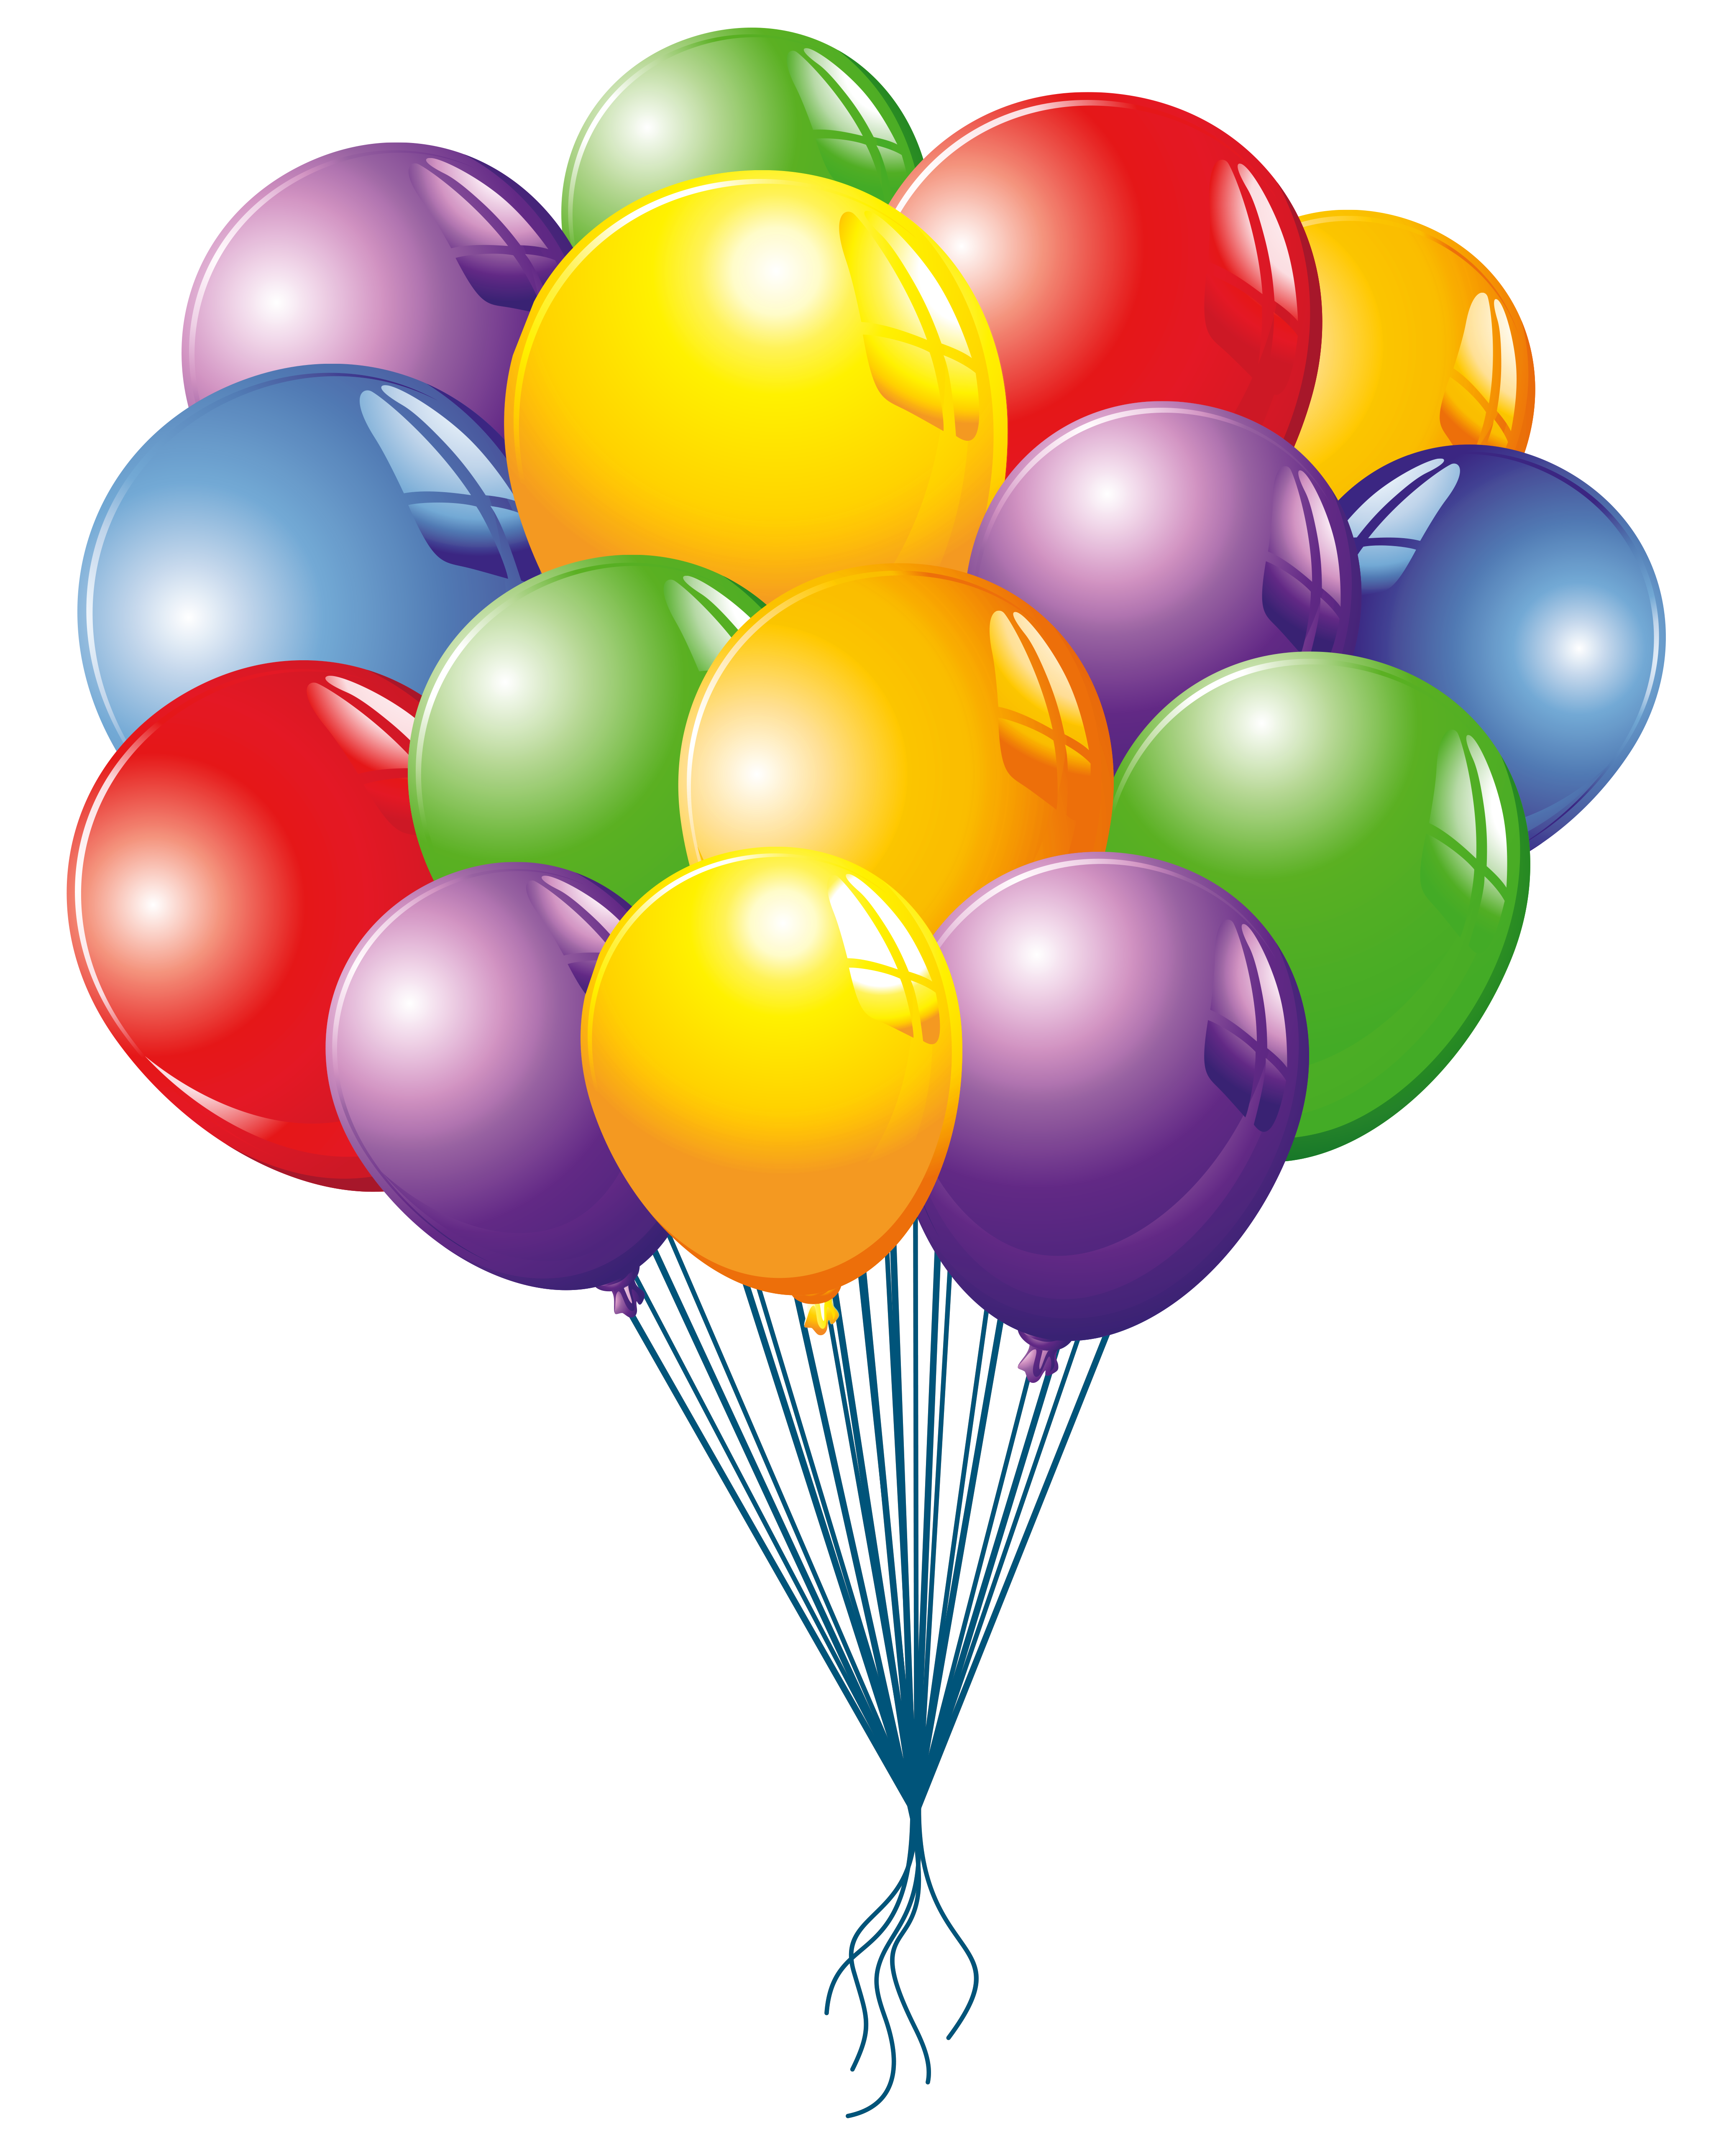 Free Balloons Cliparts, Download Free Clip Art, Free Clip